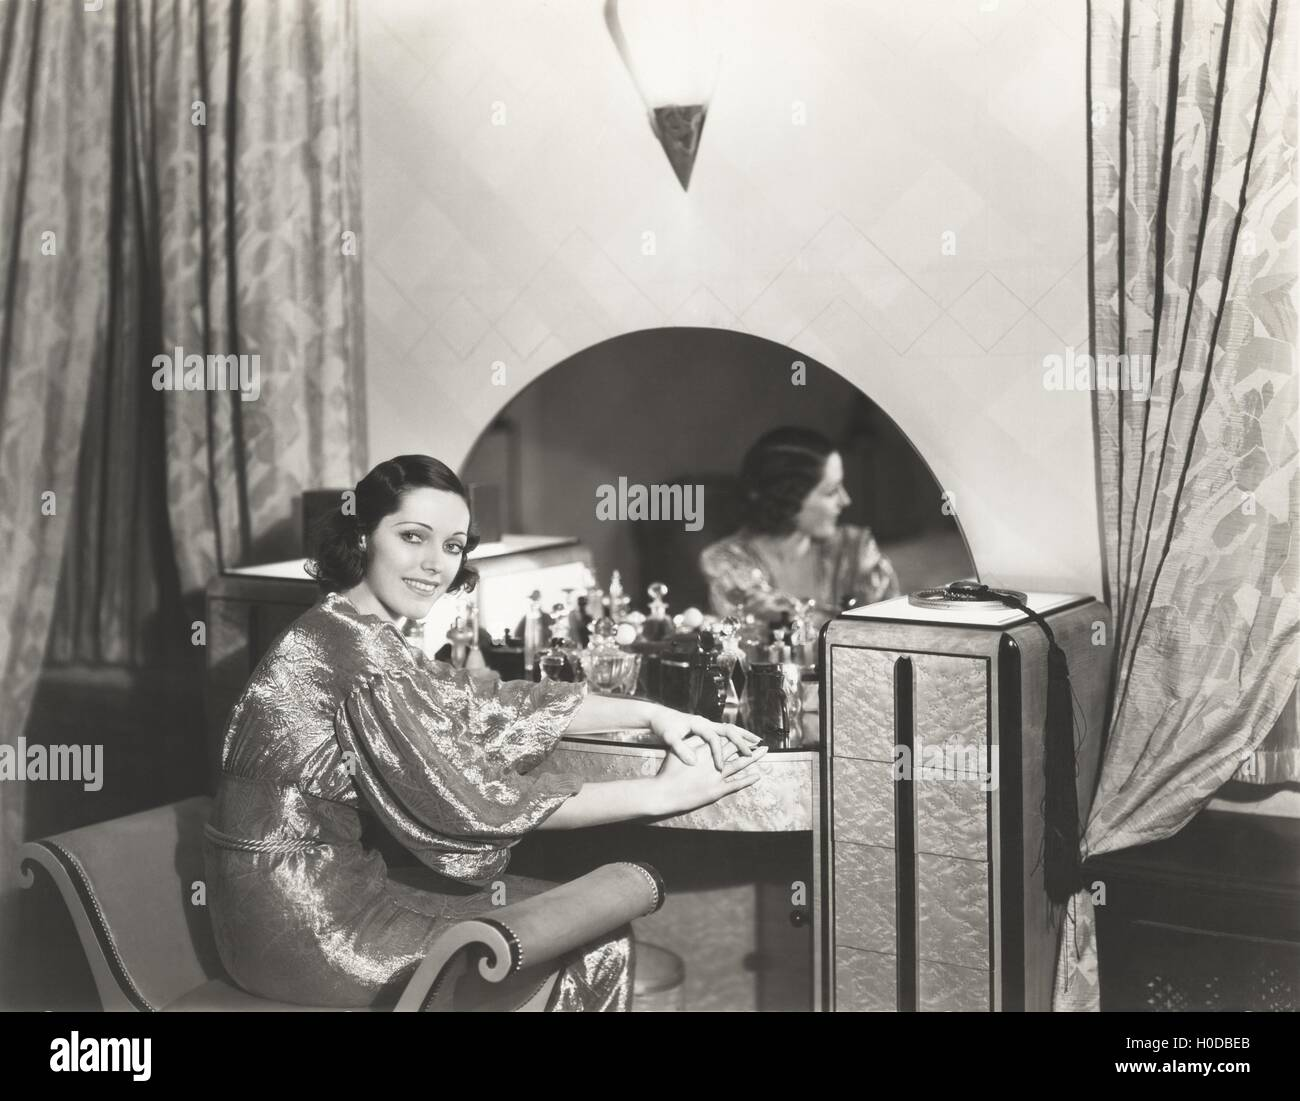 Woman in metallic dress sitting at her dressing table - Stock Image